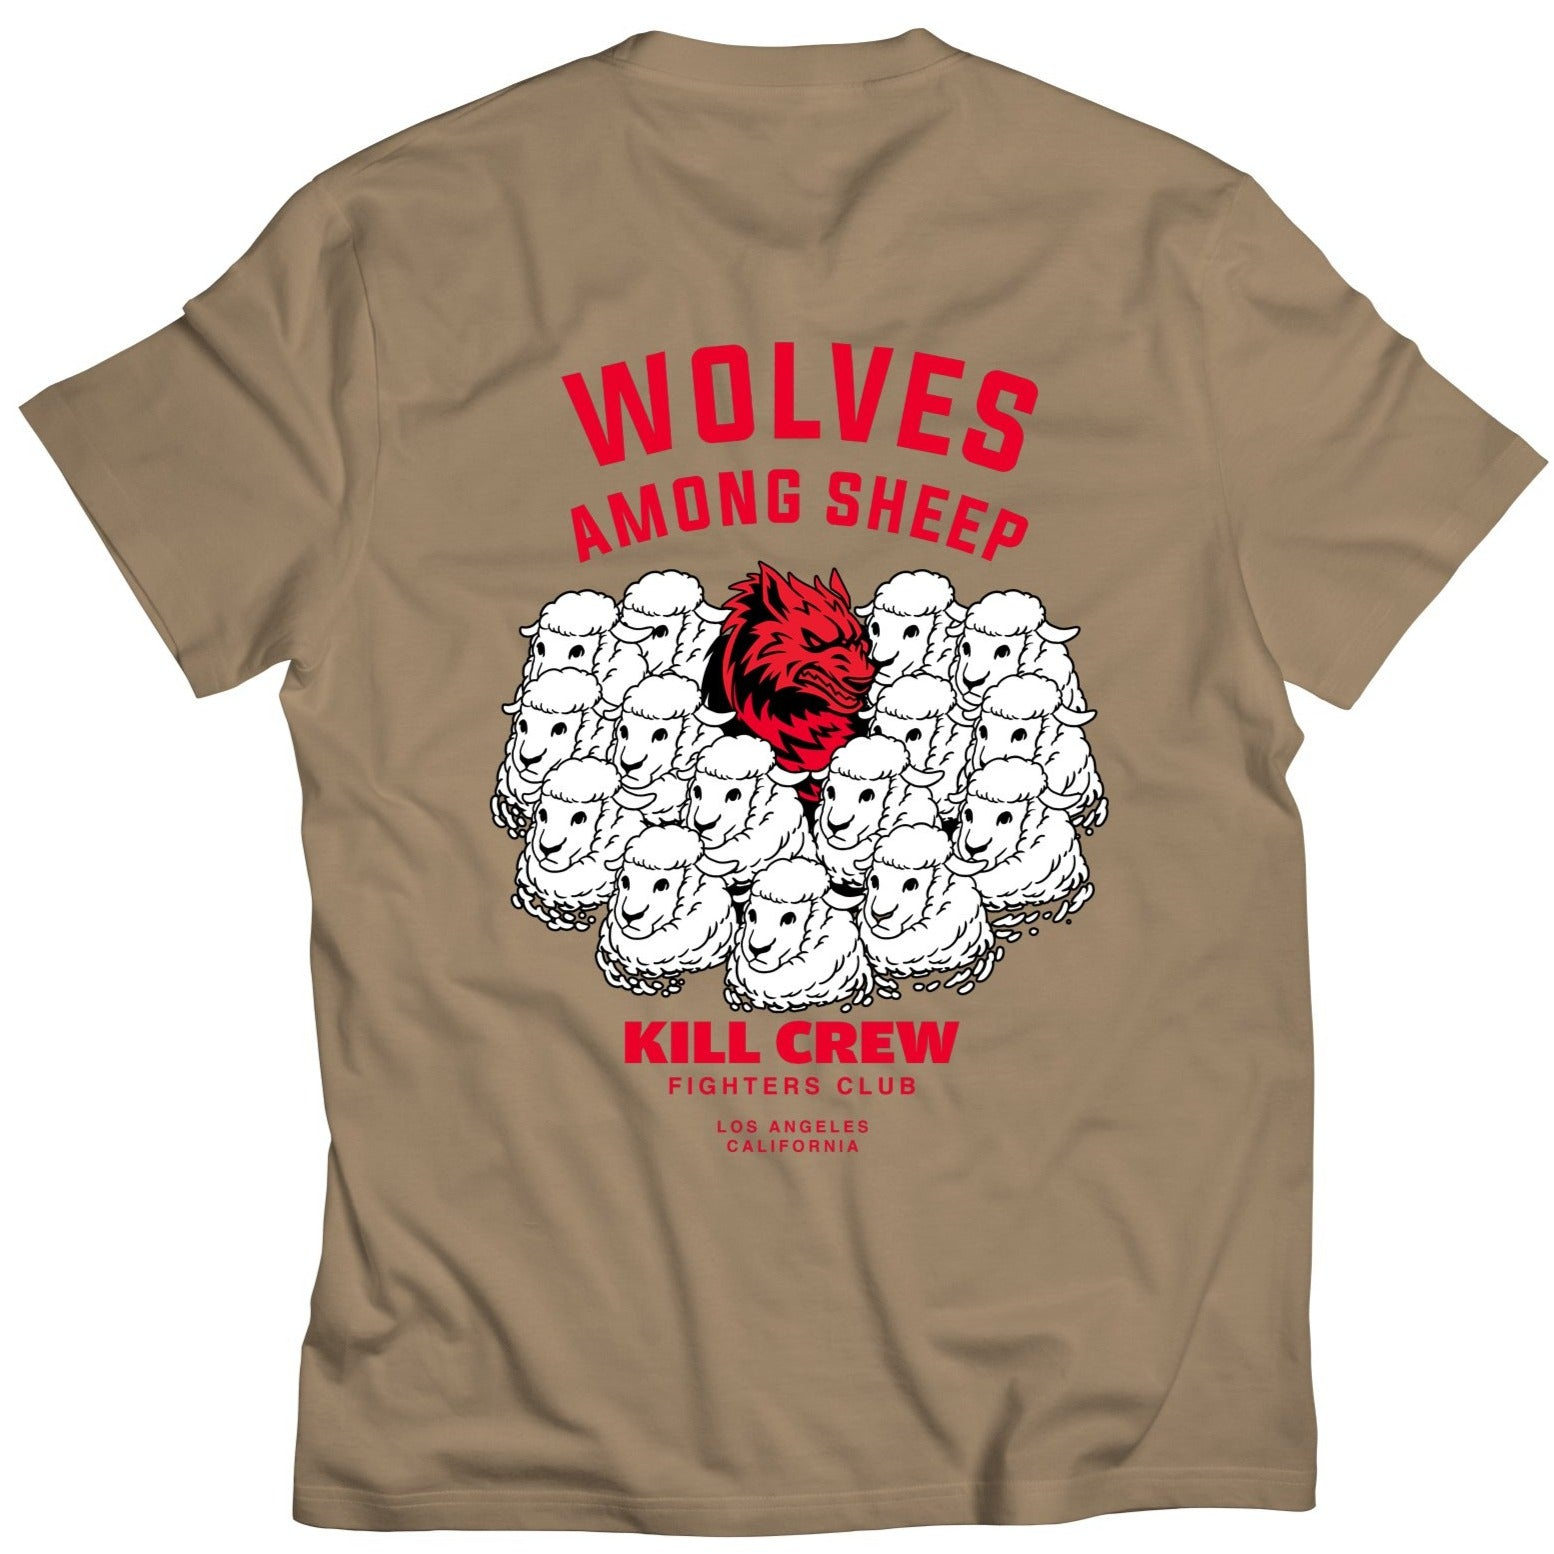 WOLVES AMONG SHEEP T-SHIRT v2 - SAND